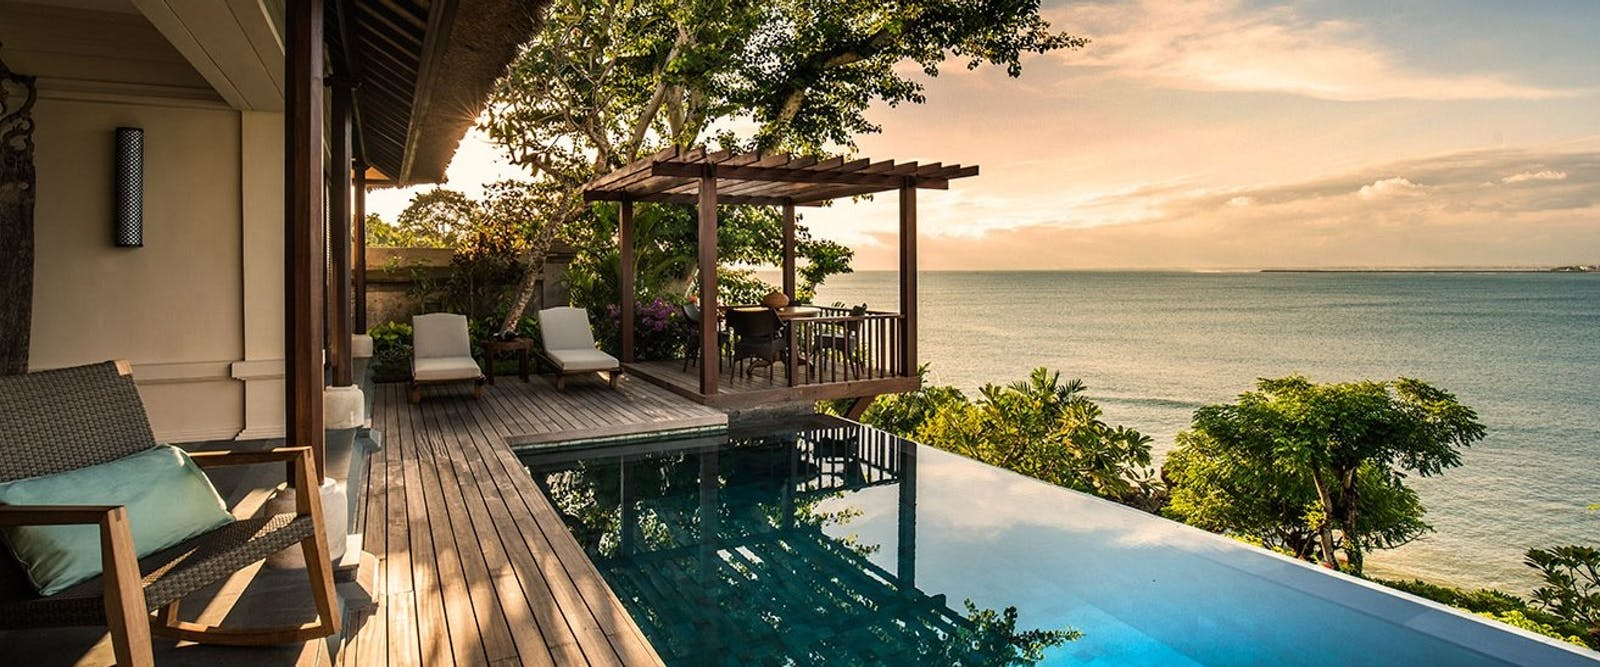 Two bedroom premier ocean villa sunset at Four Seasons Resort Bali at Jimbaran Bay